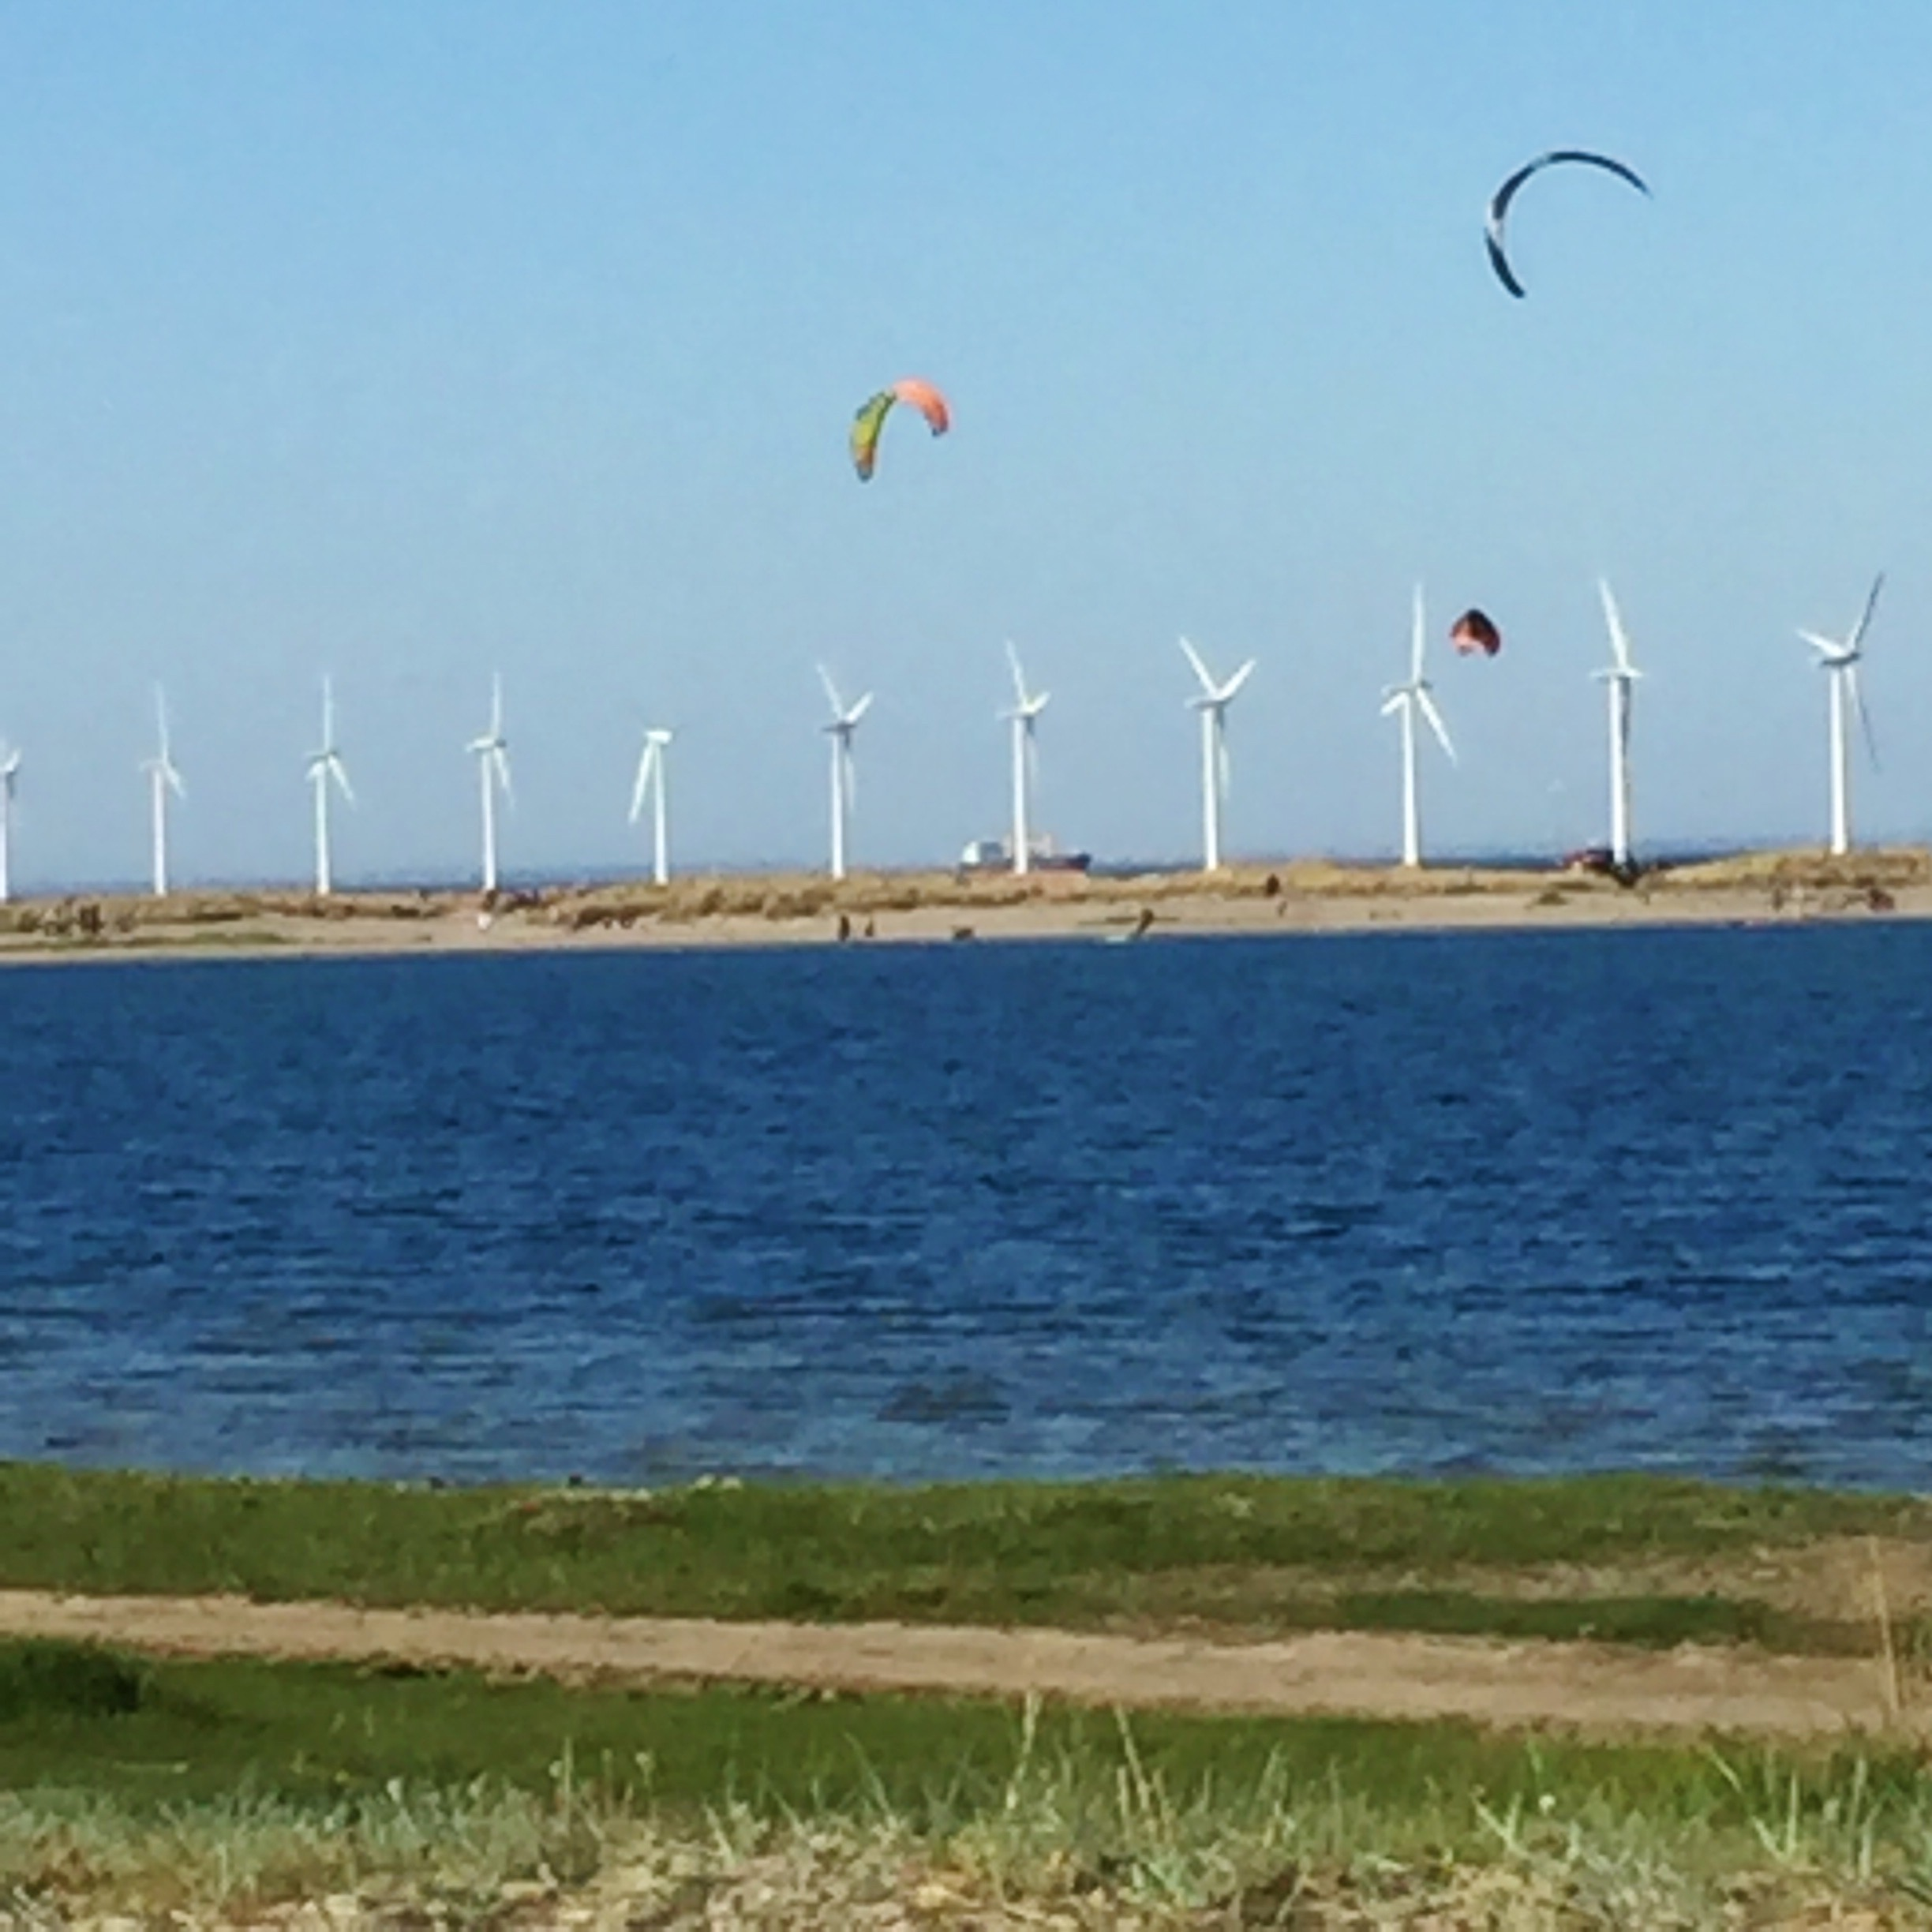 Wind Power at Amagerstrand